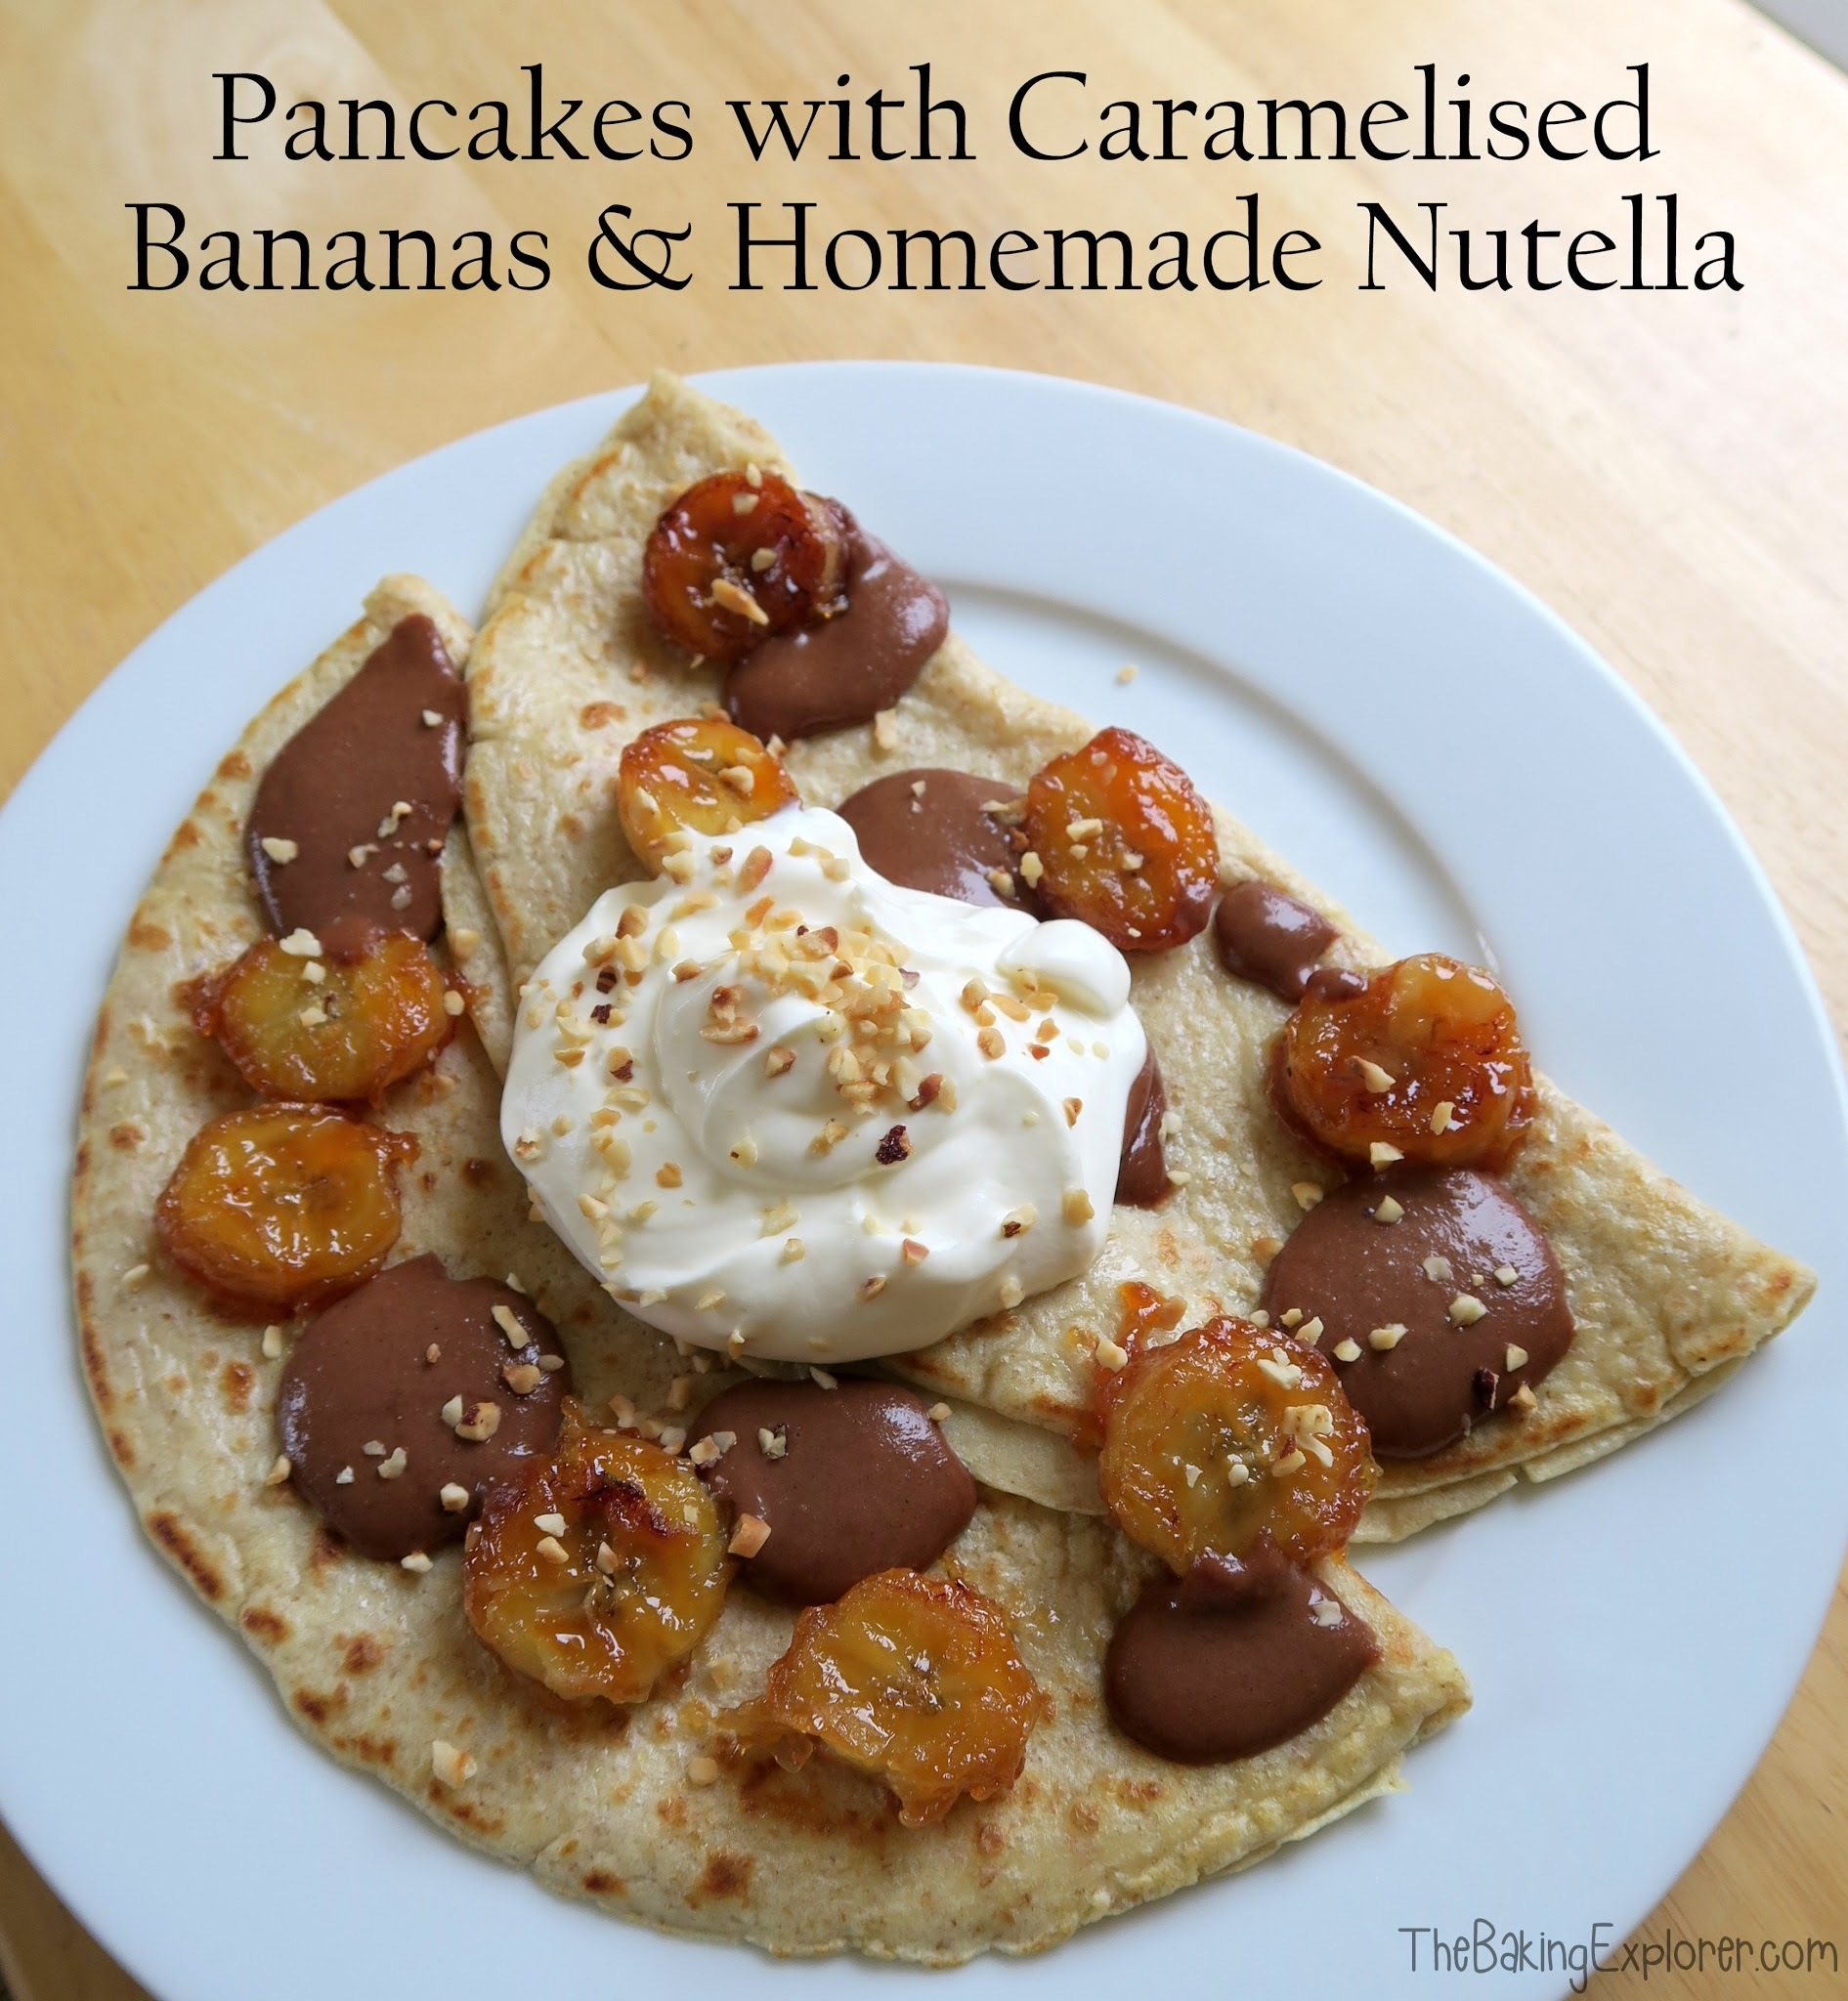 Pancakes with Caramelised Bananas & Homemade Nutella